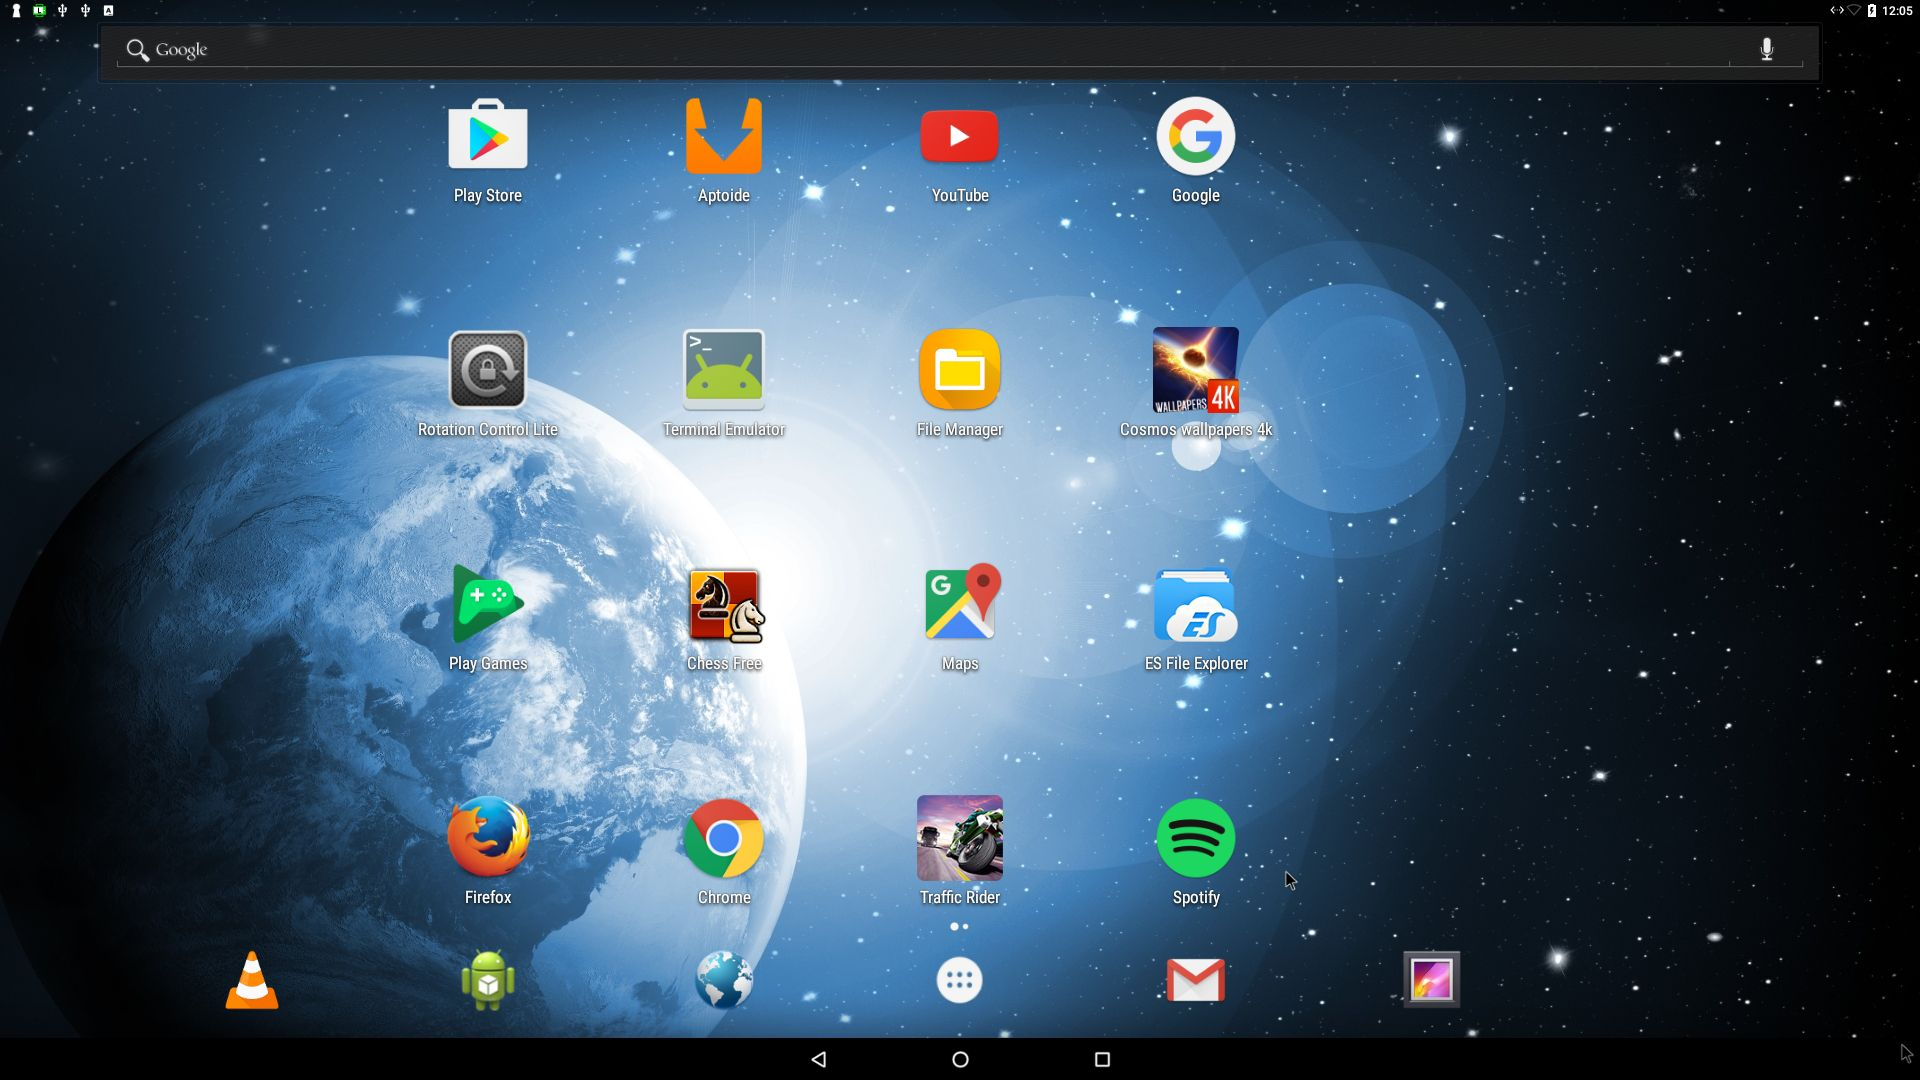 Android-x86_64 Nougat 7 0 with GAPPS and kernel 4 4 19-exton-android